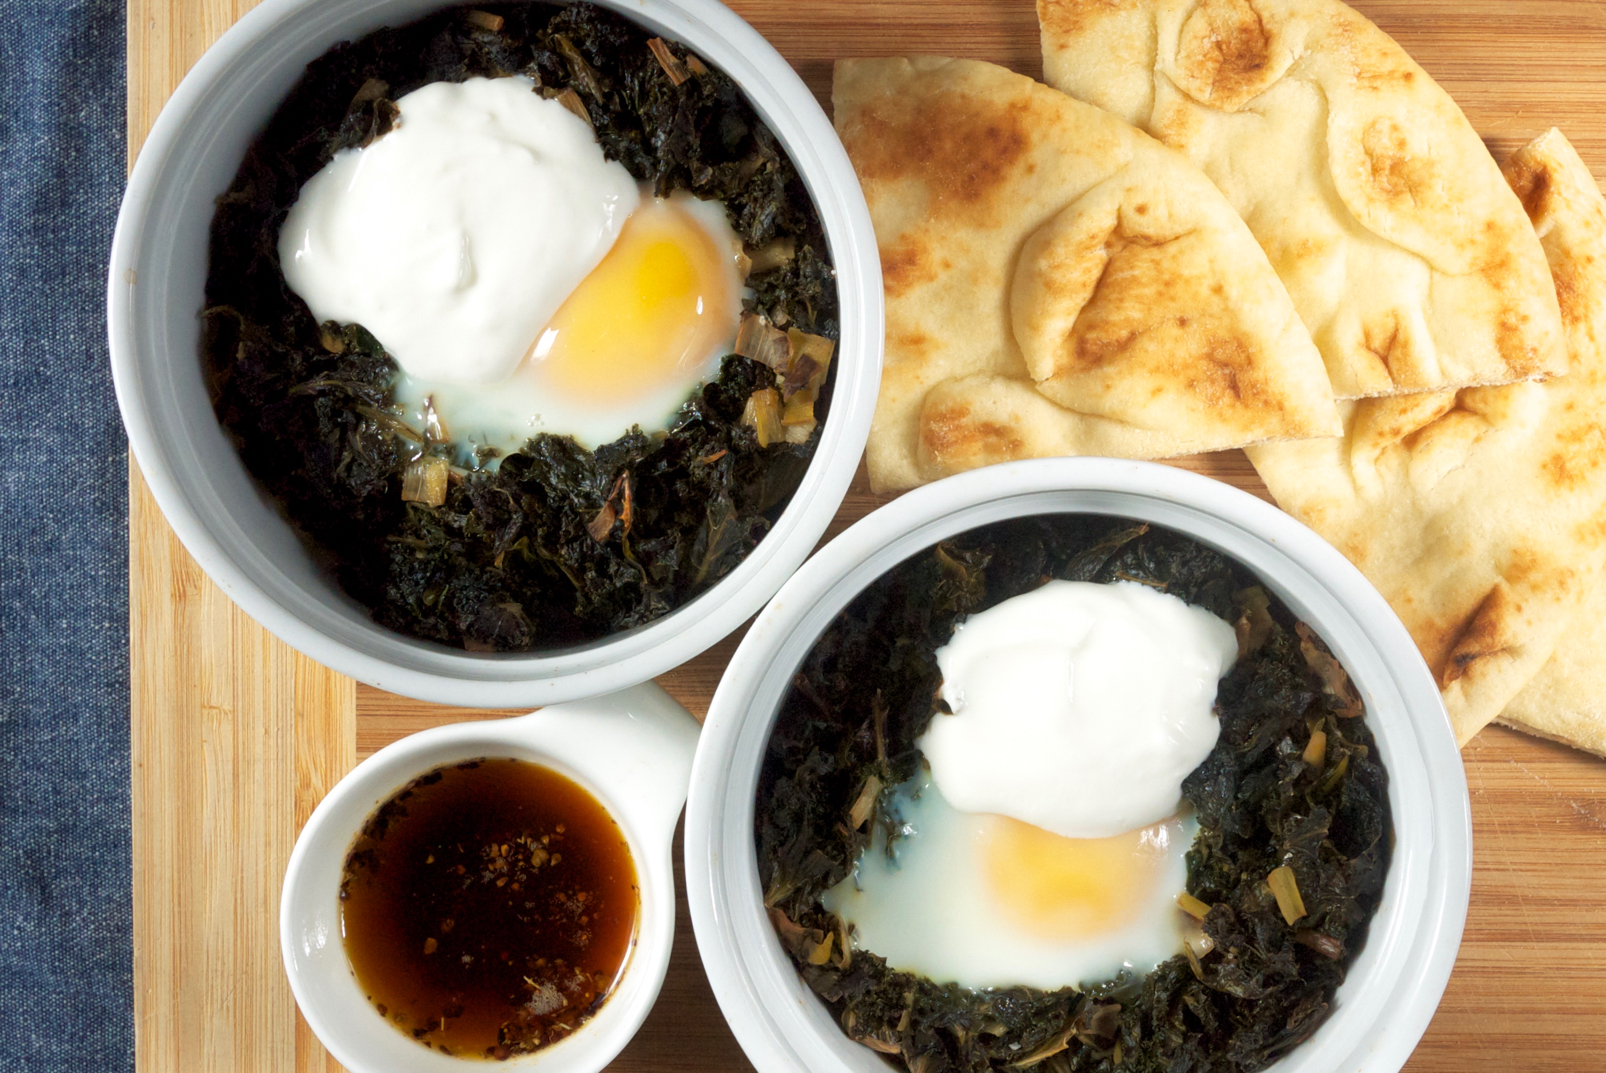 Baked Eggs with Kale, Yogurt, and Spiced Butter